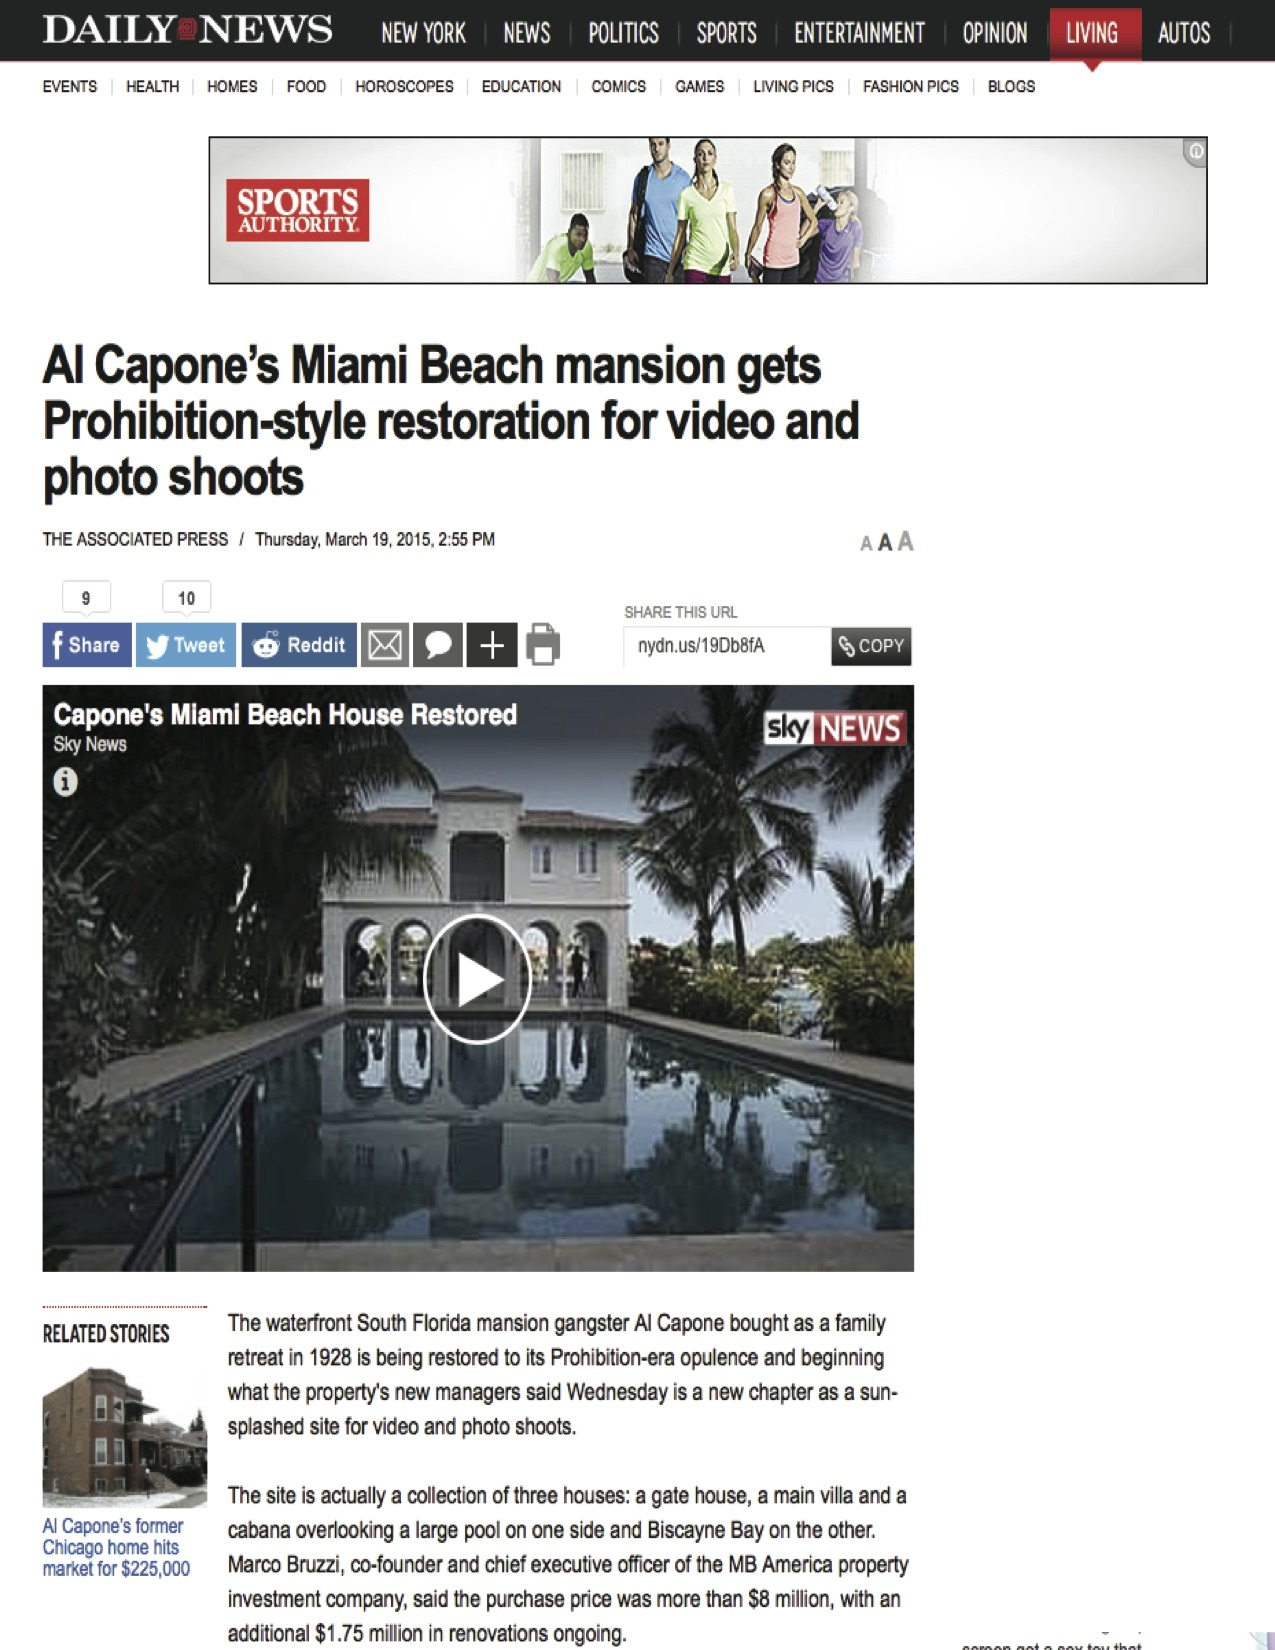 """<p><strong>Daily News</strong><a href=""""http://www.nydailynews.com/life-style/al-capone-miami-beach-mansion-restoration-article-1.2155650"""" target=""""_blank"""">Watch Video →</a></p>"""